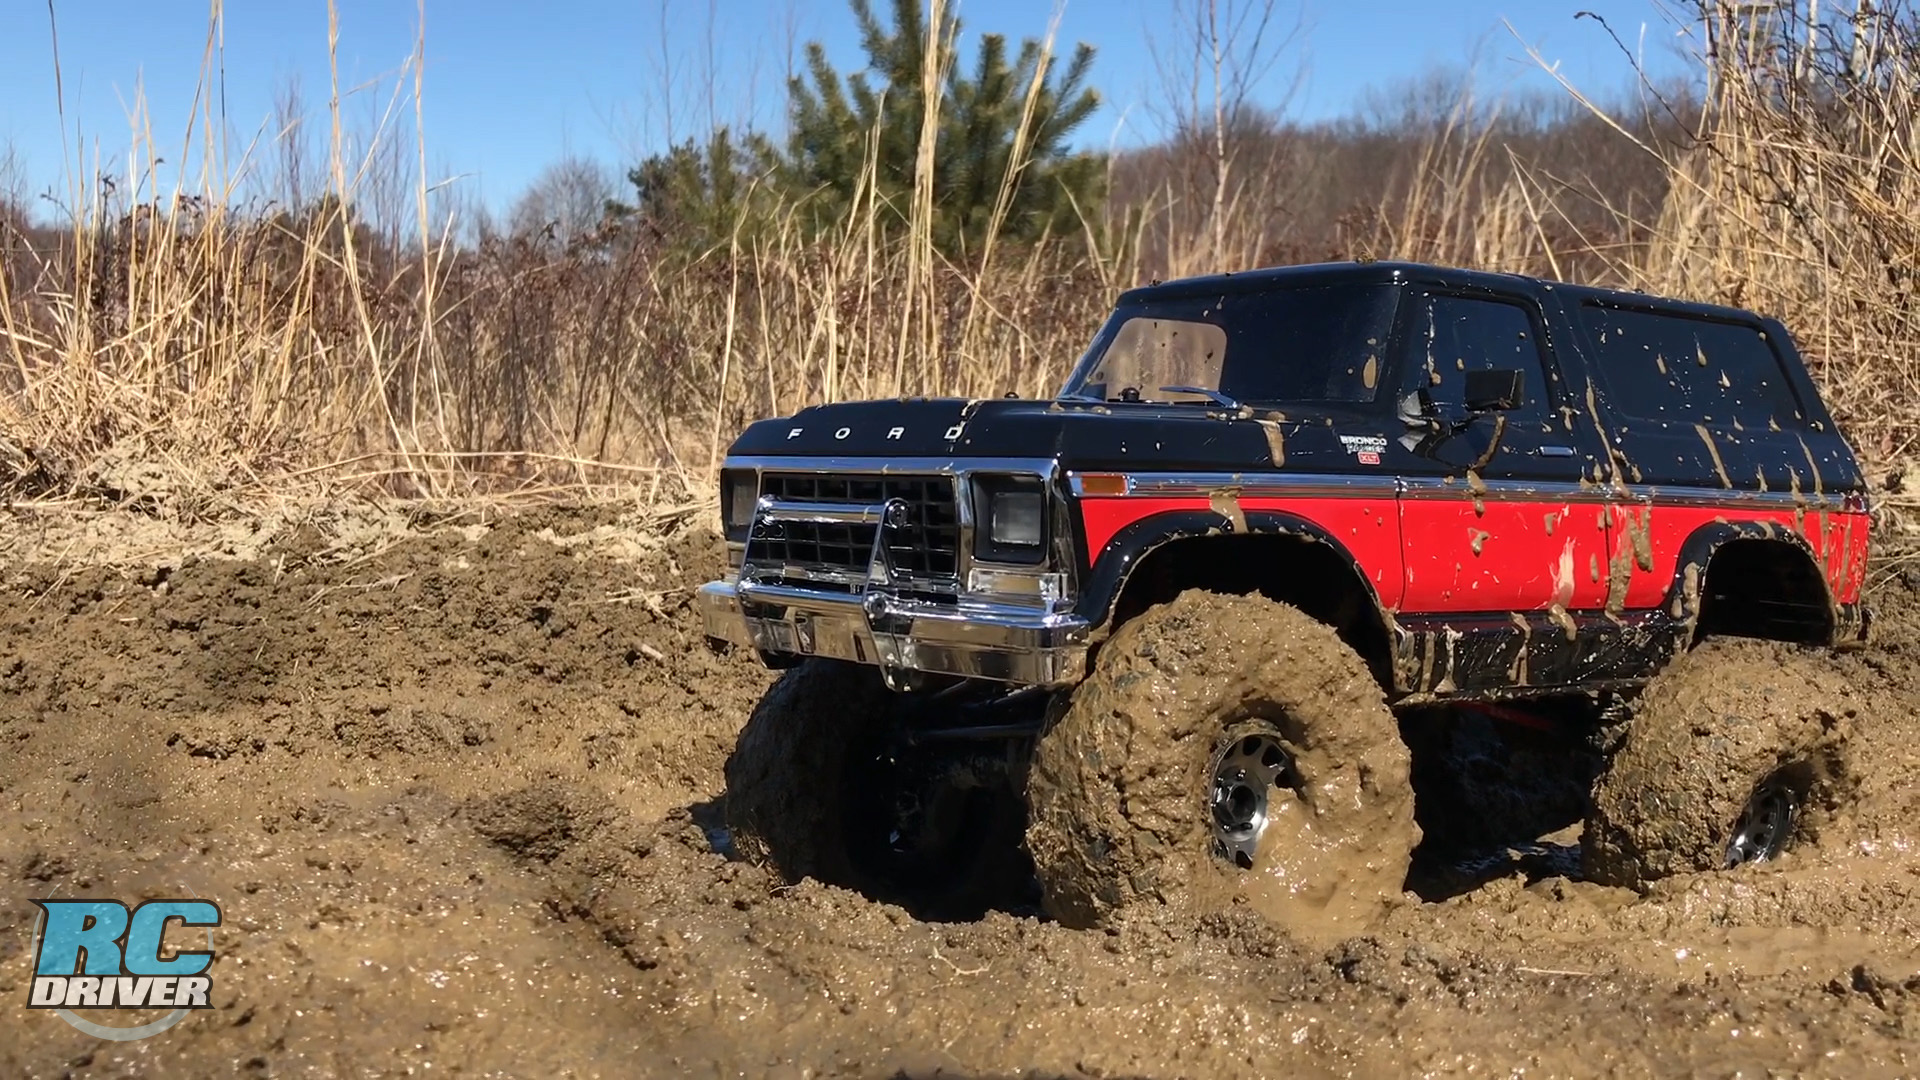 Traxxas TRX-4 Lifted Ford Bronco Off-Road Project Truck Action